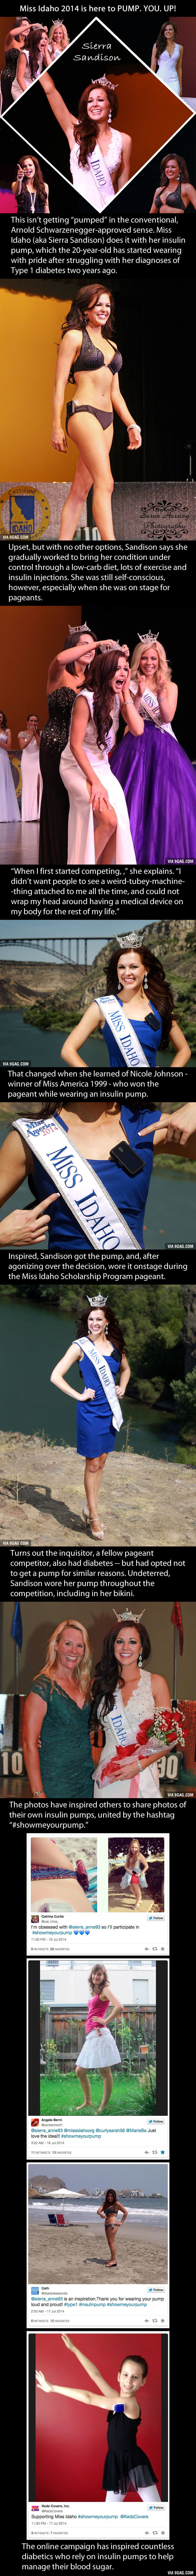 Miss Idaho Wears An Insulin Pump, And She's Not Afraid To Show It